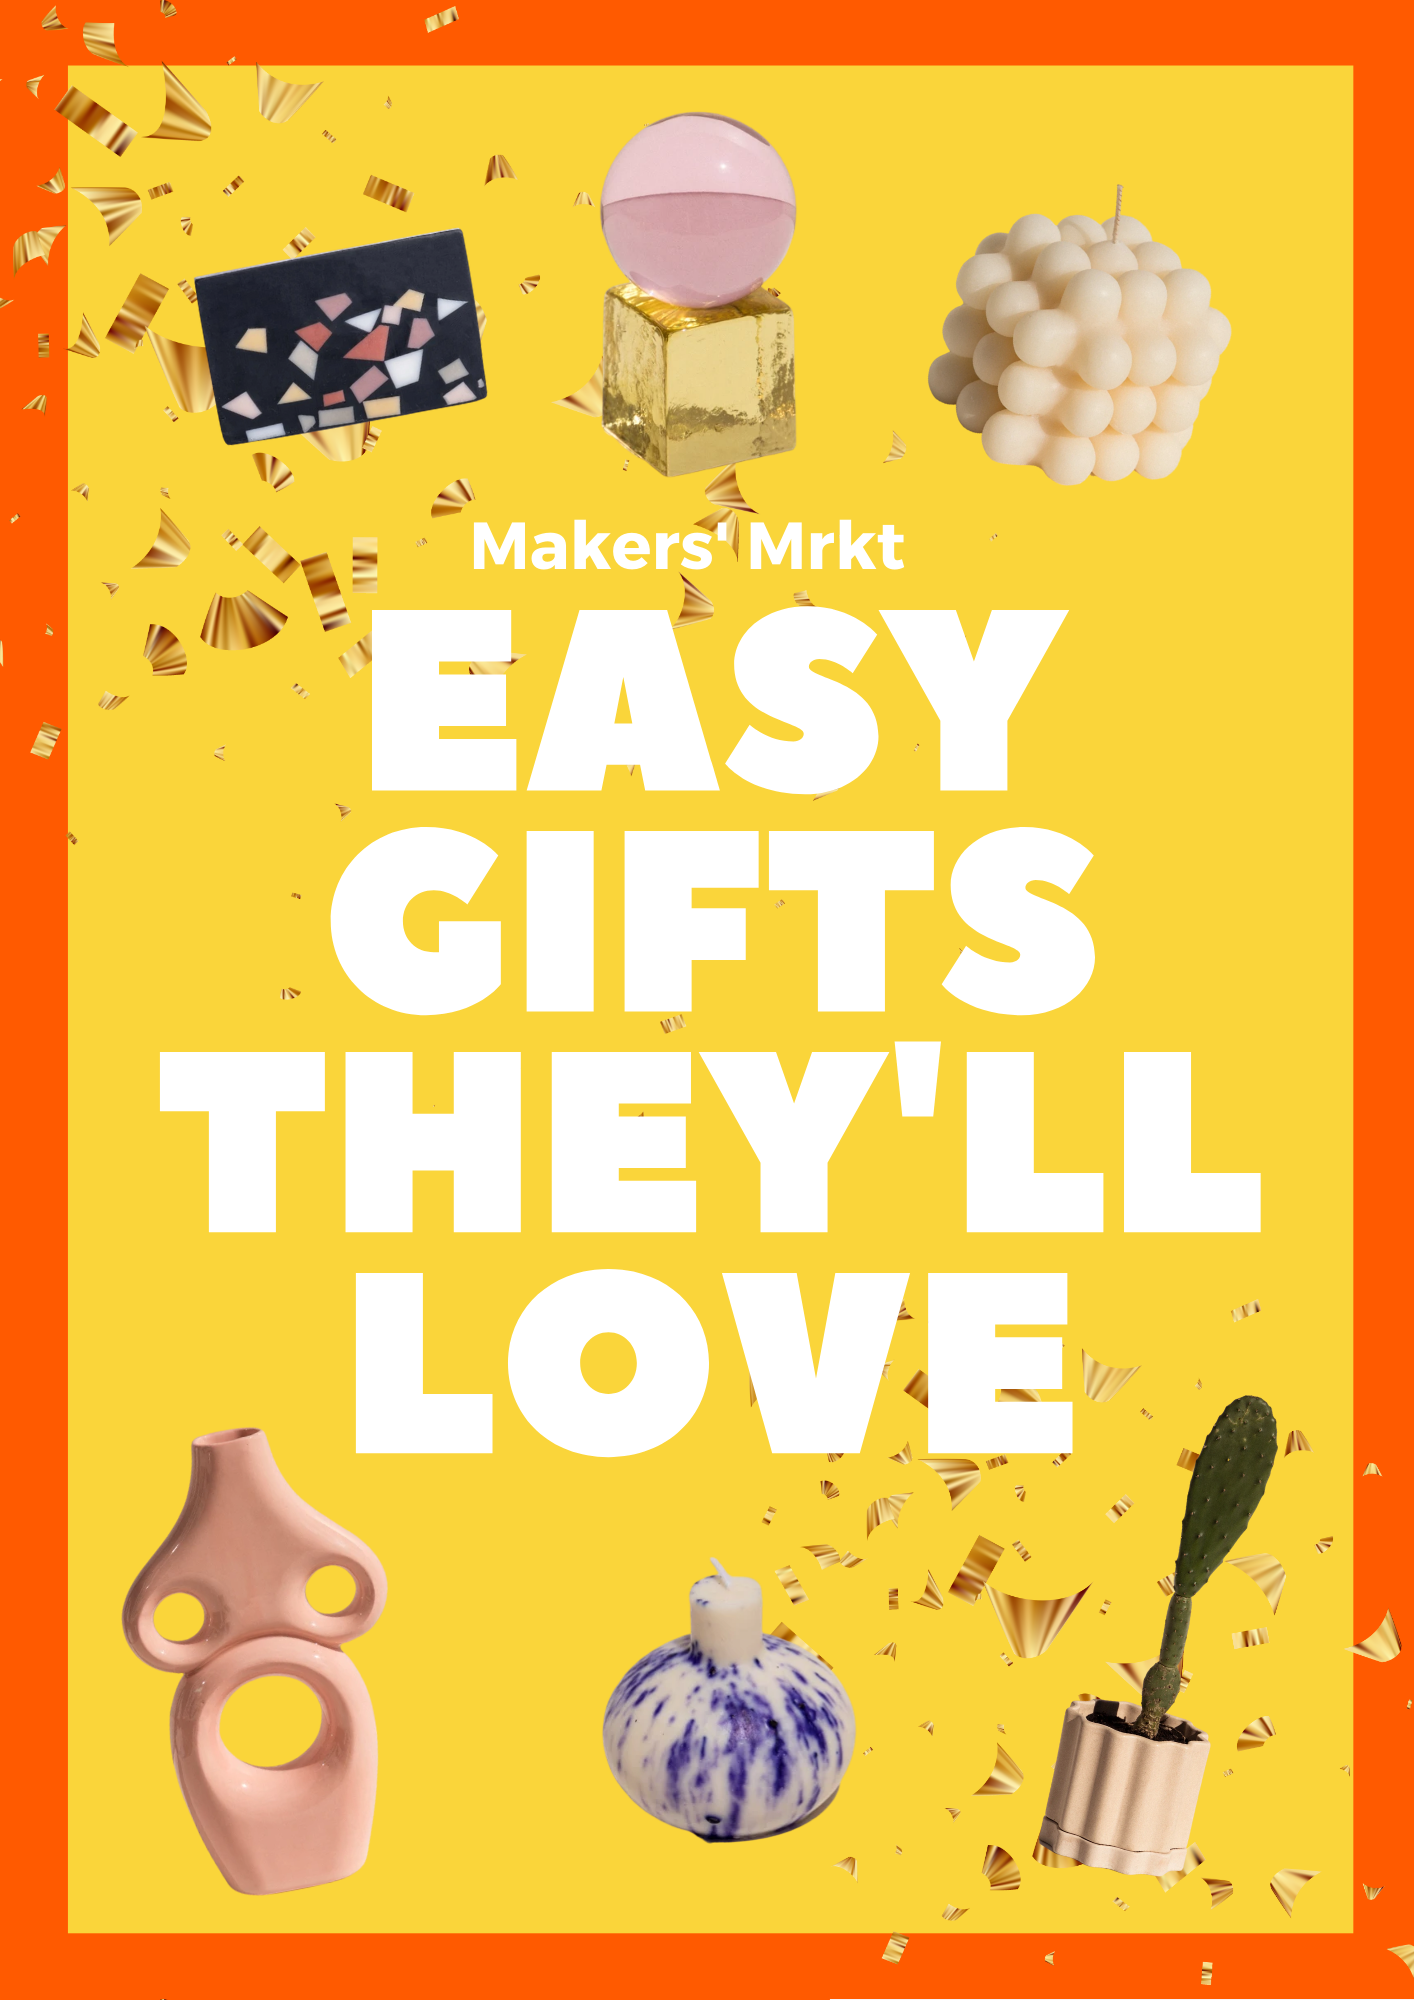 gift ideas makers mrkt handmade homemade gifts presents christmas xmas